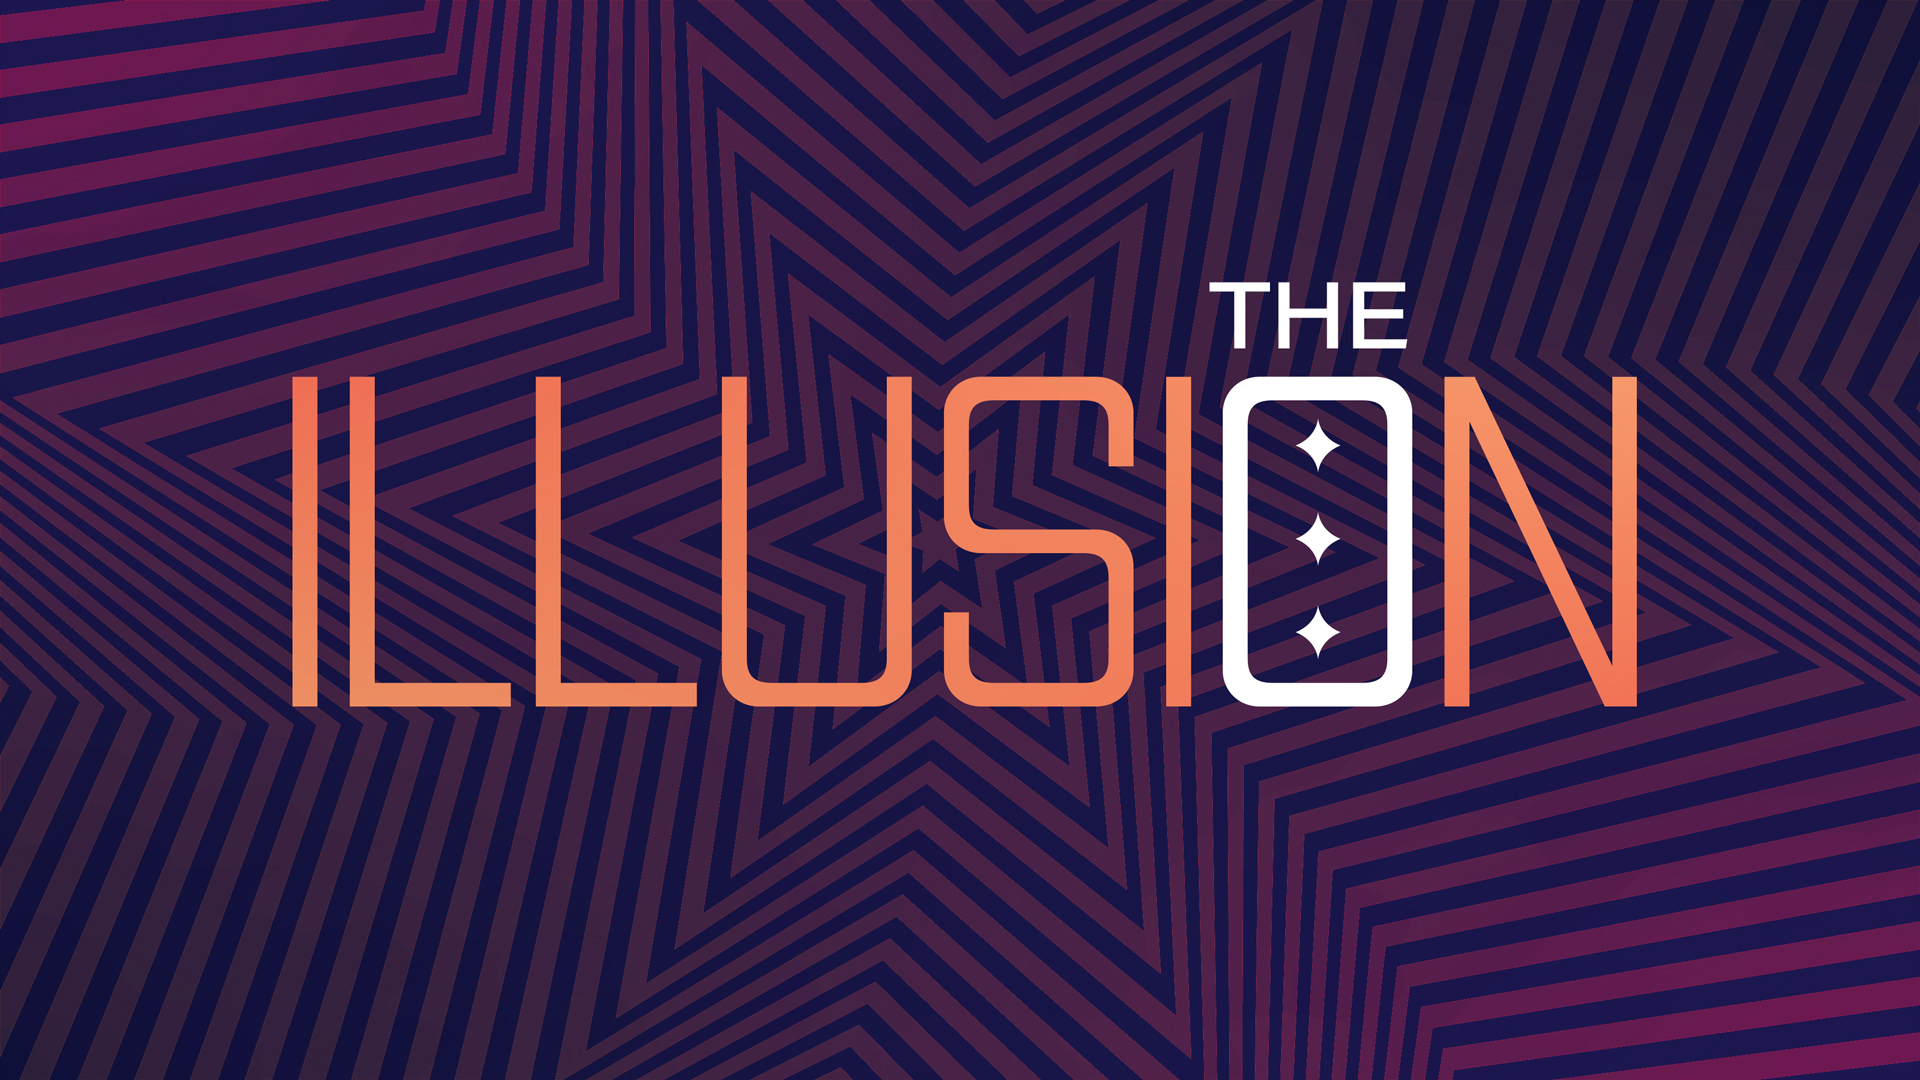 The Illusion Conclusion